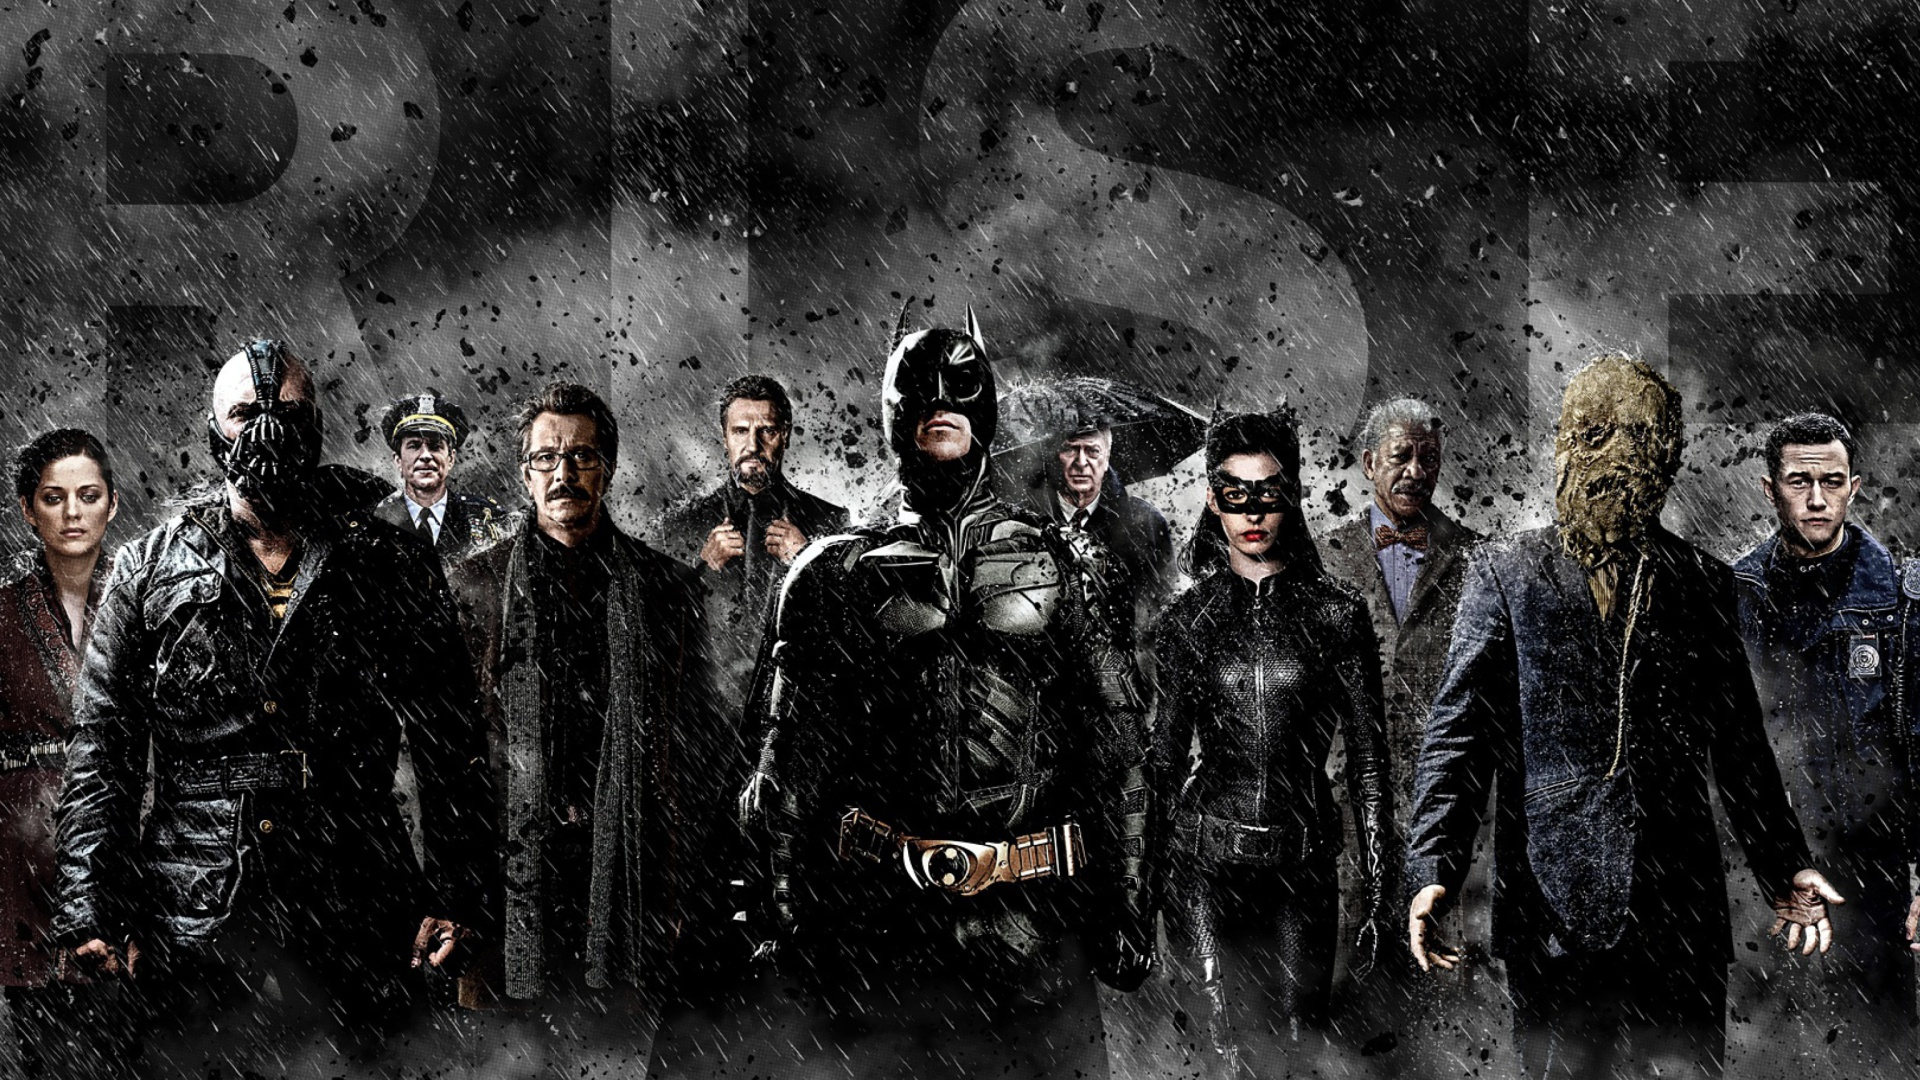 Batman Trilogy 1920x1080 wallpaper1920X1080 wallpaper screensaver 1920x1080